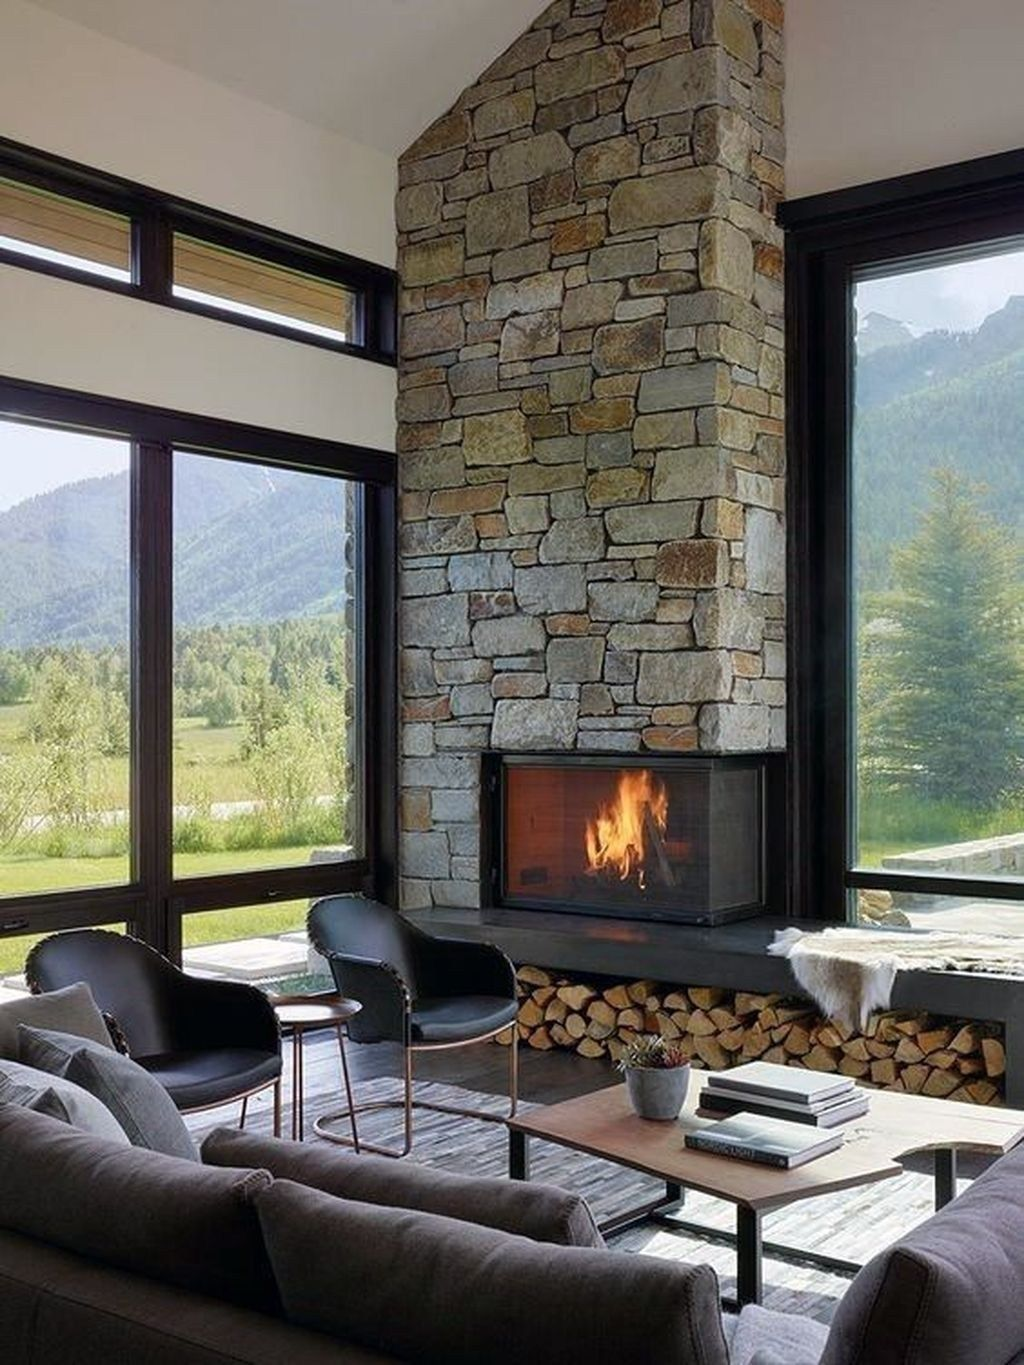 44 stunning corner fireplace ideas for your living room on stylish and elegant modern glass wall interior design ideas get the financial benefits id=30126